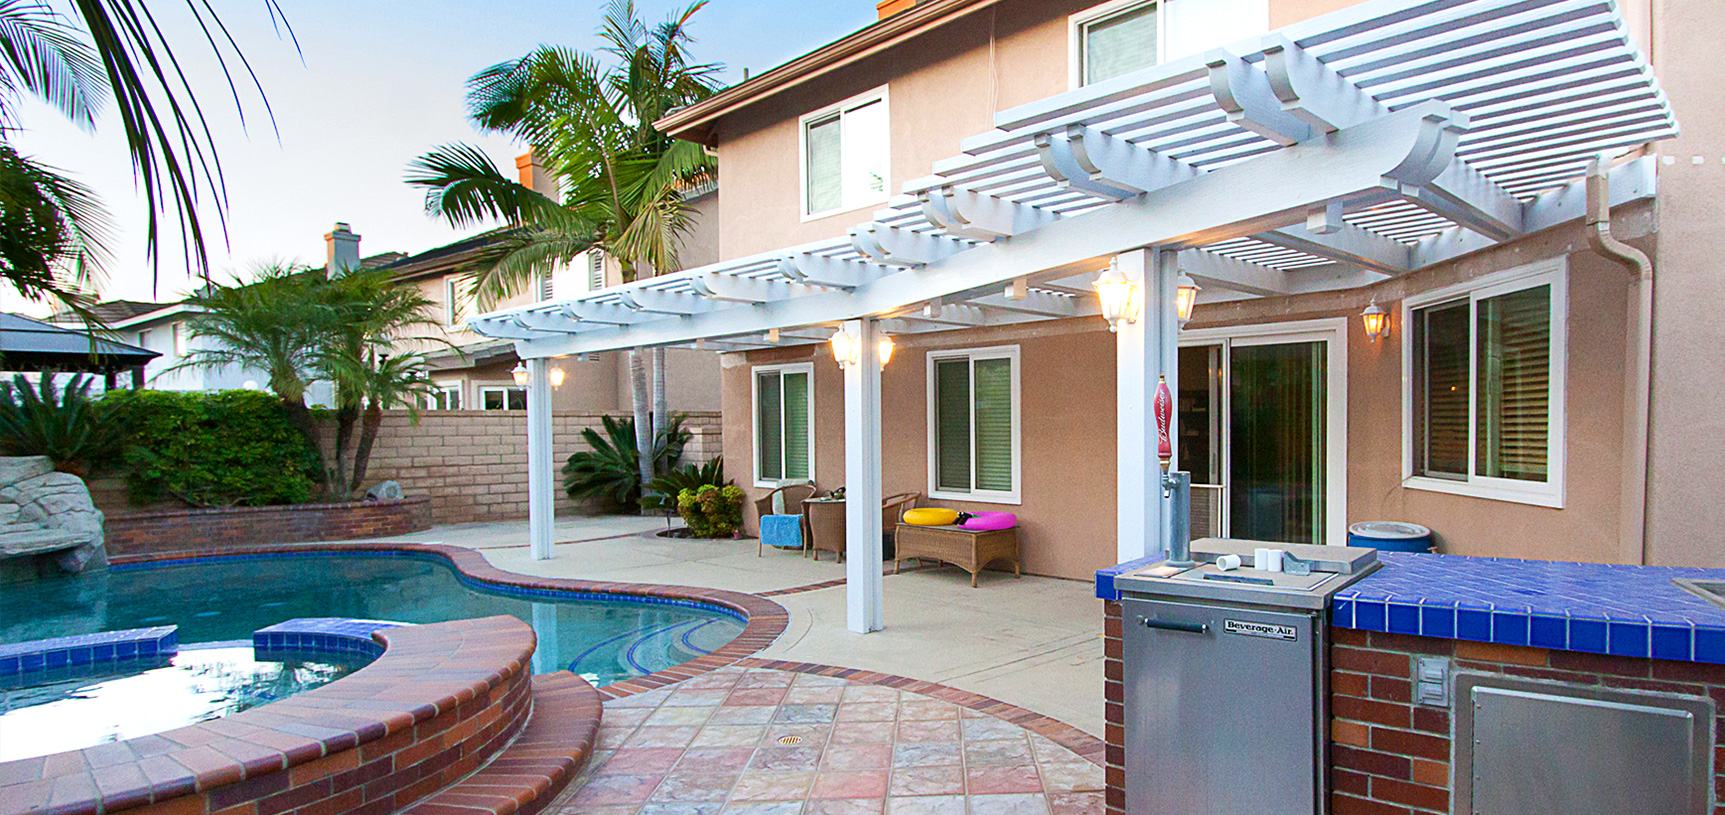 Great Elitewood Patio Cover In Orange County, California